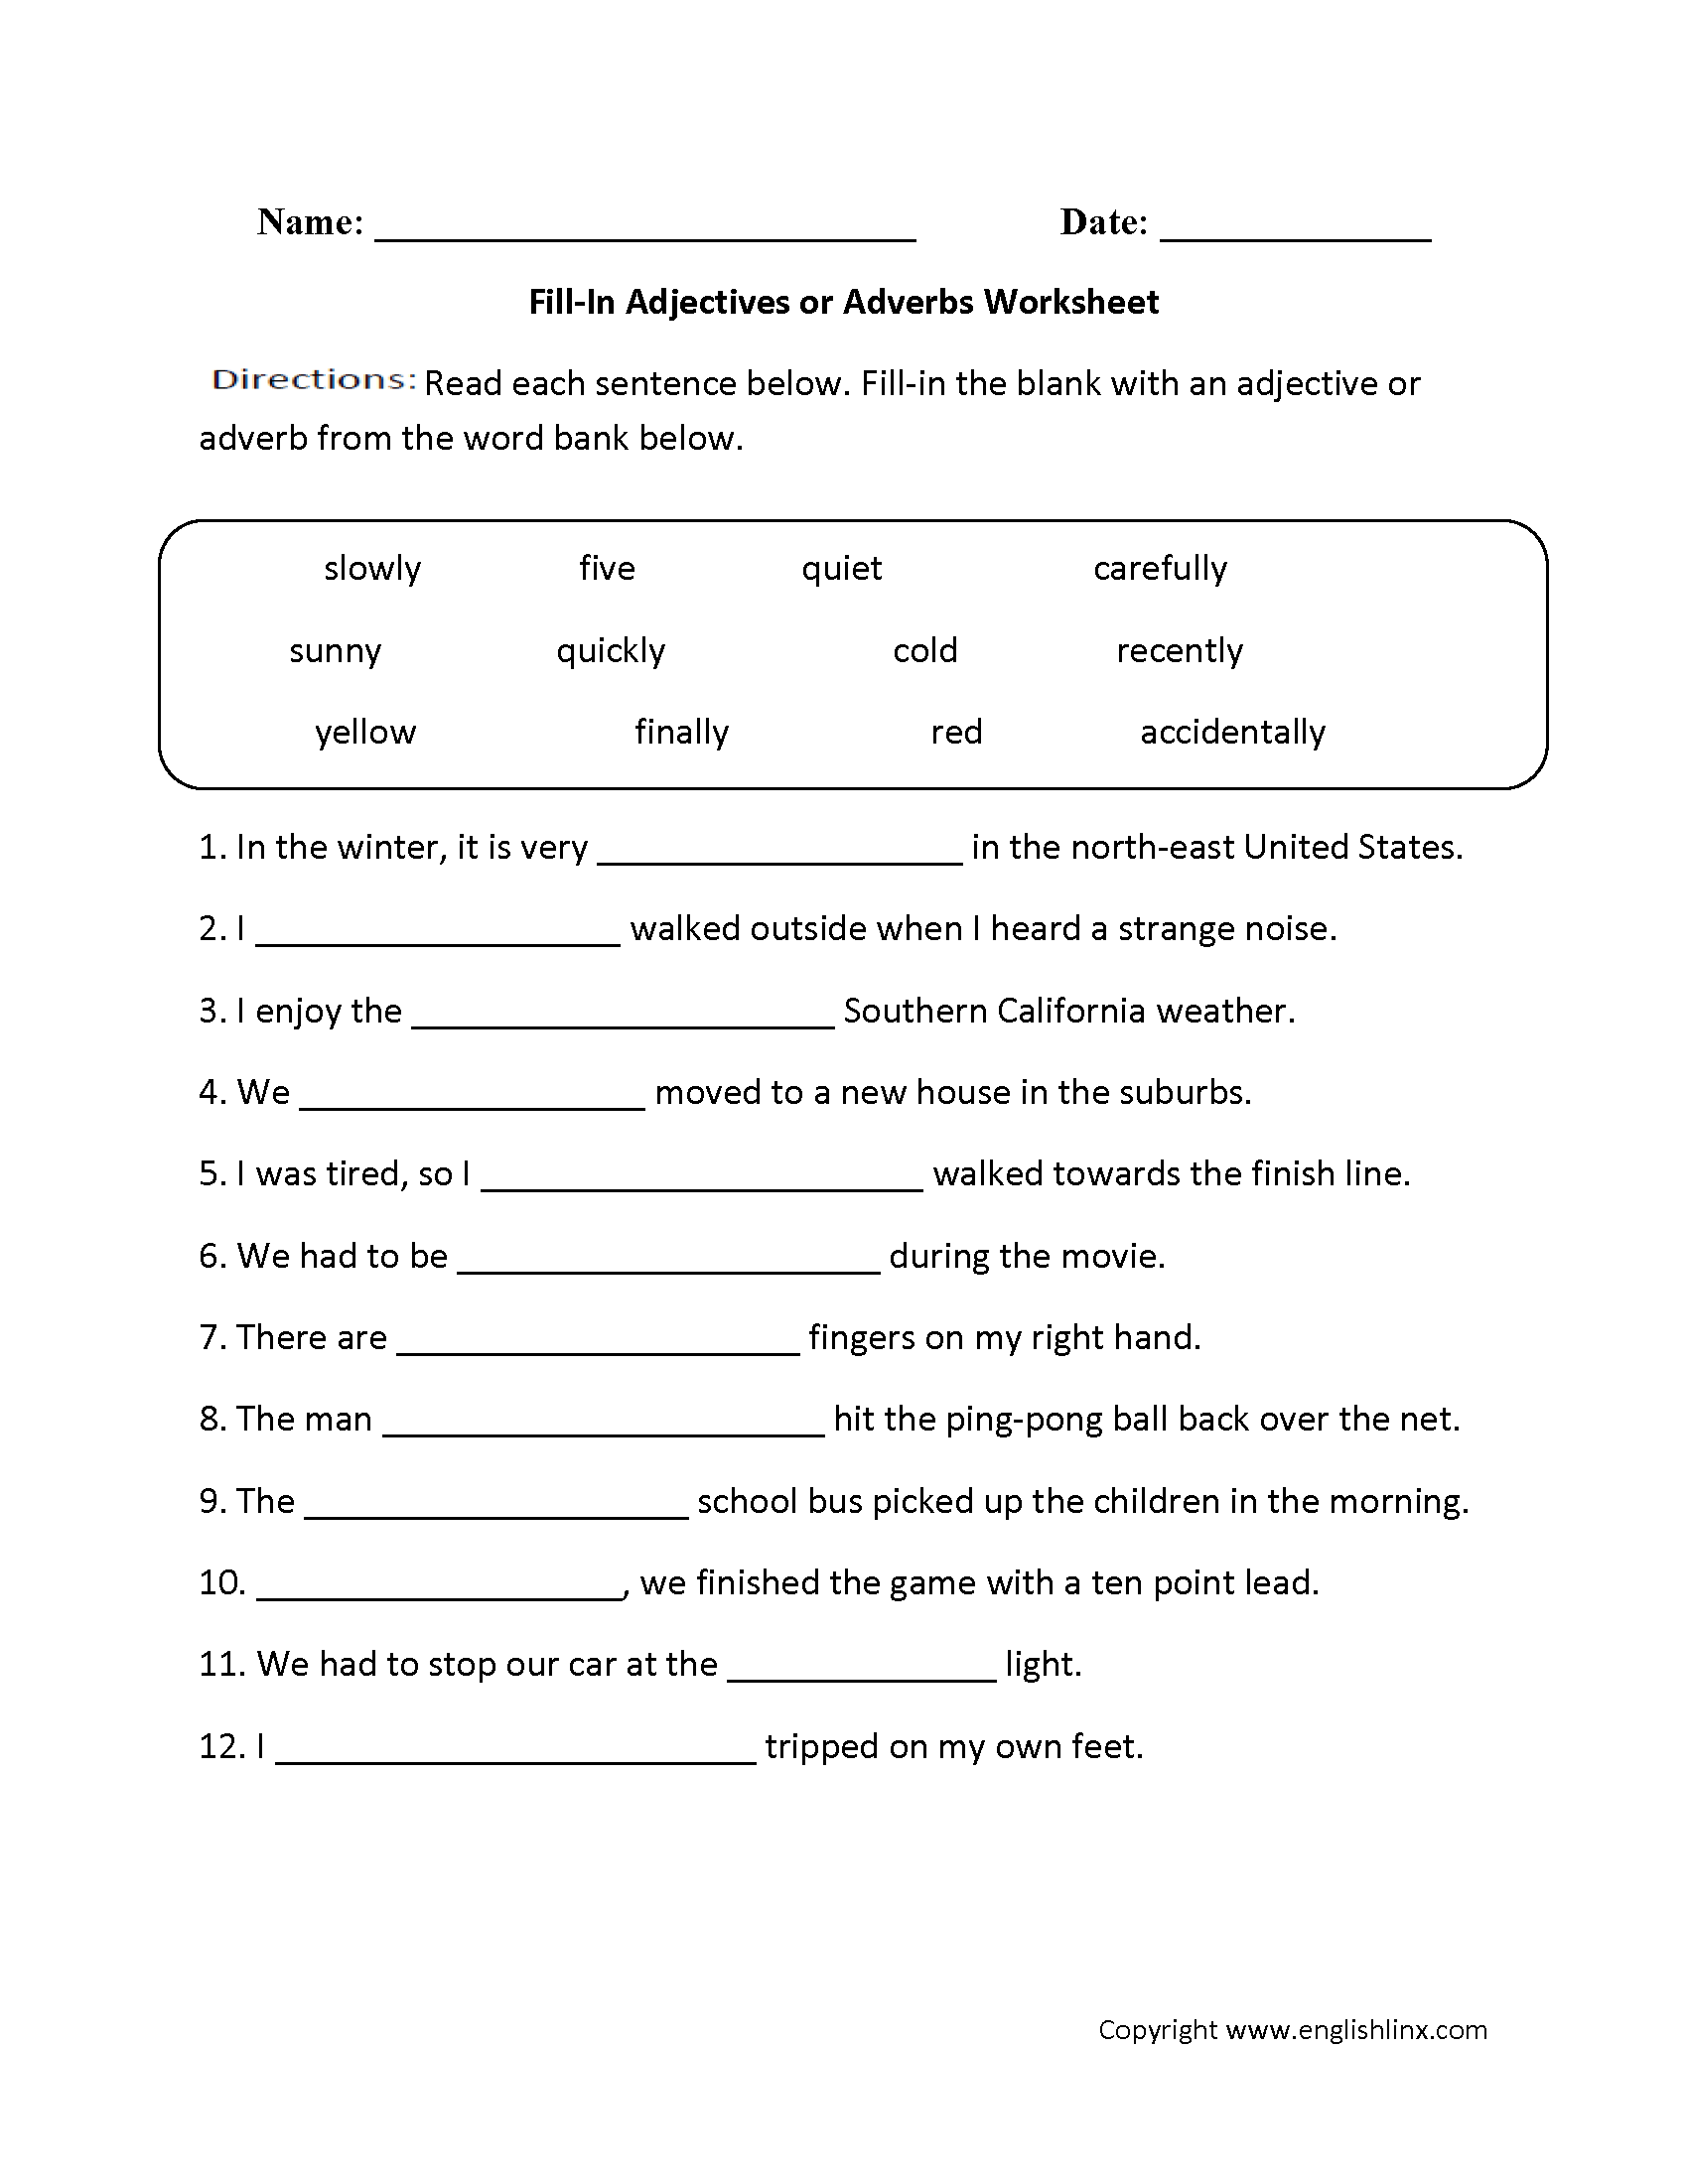 Worksheet Adverbs Worksheets For Grade 3 adjectives worksheets or adverbs worksheet